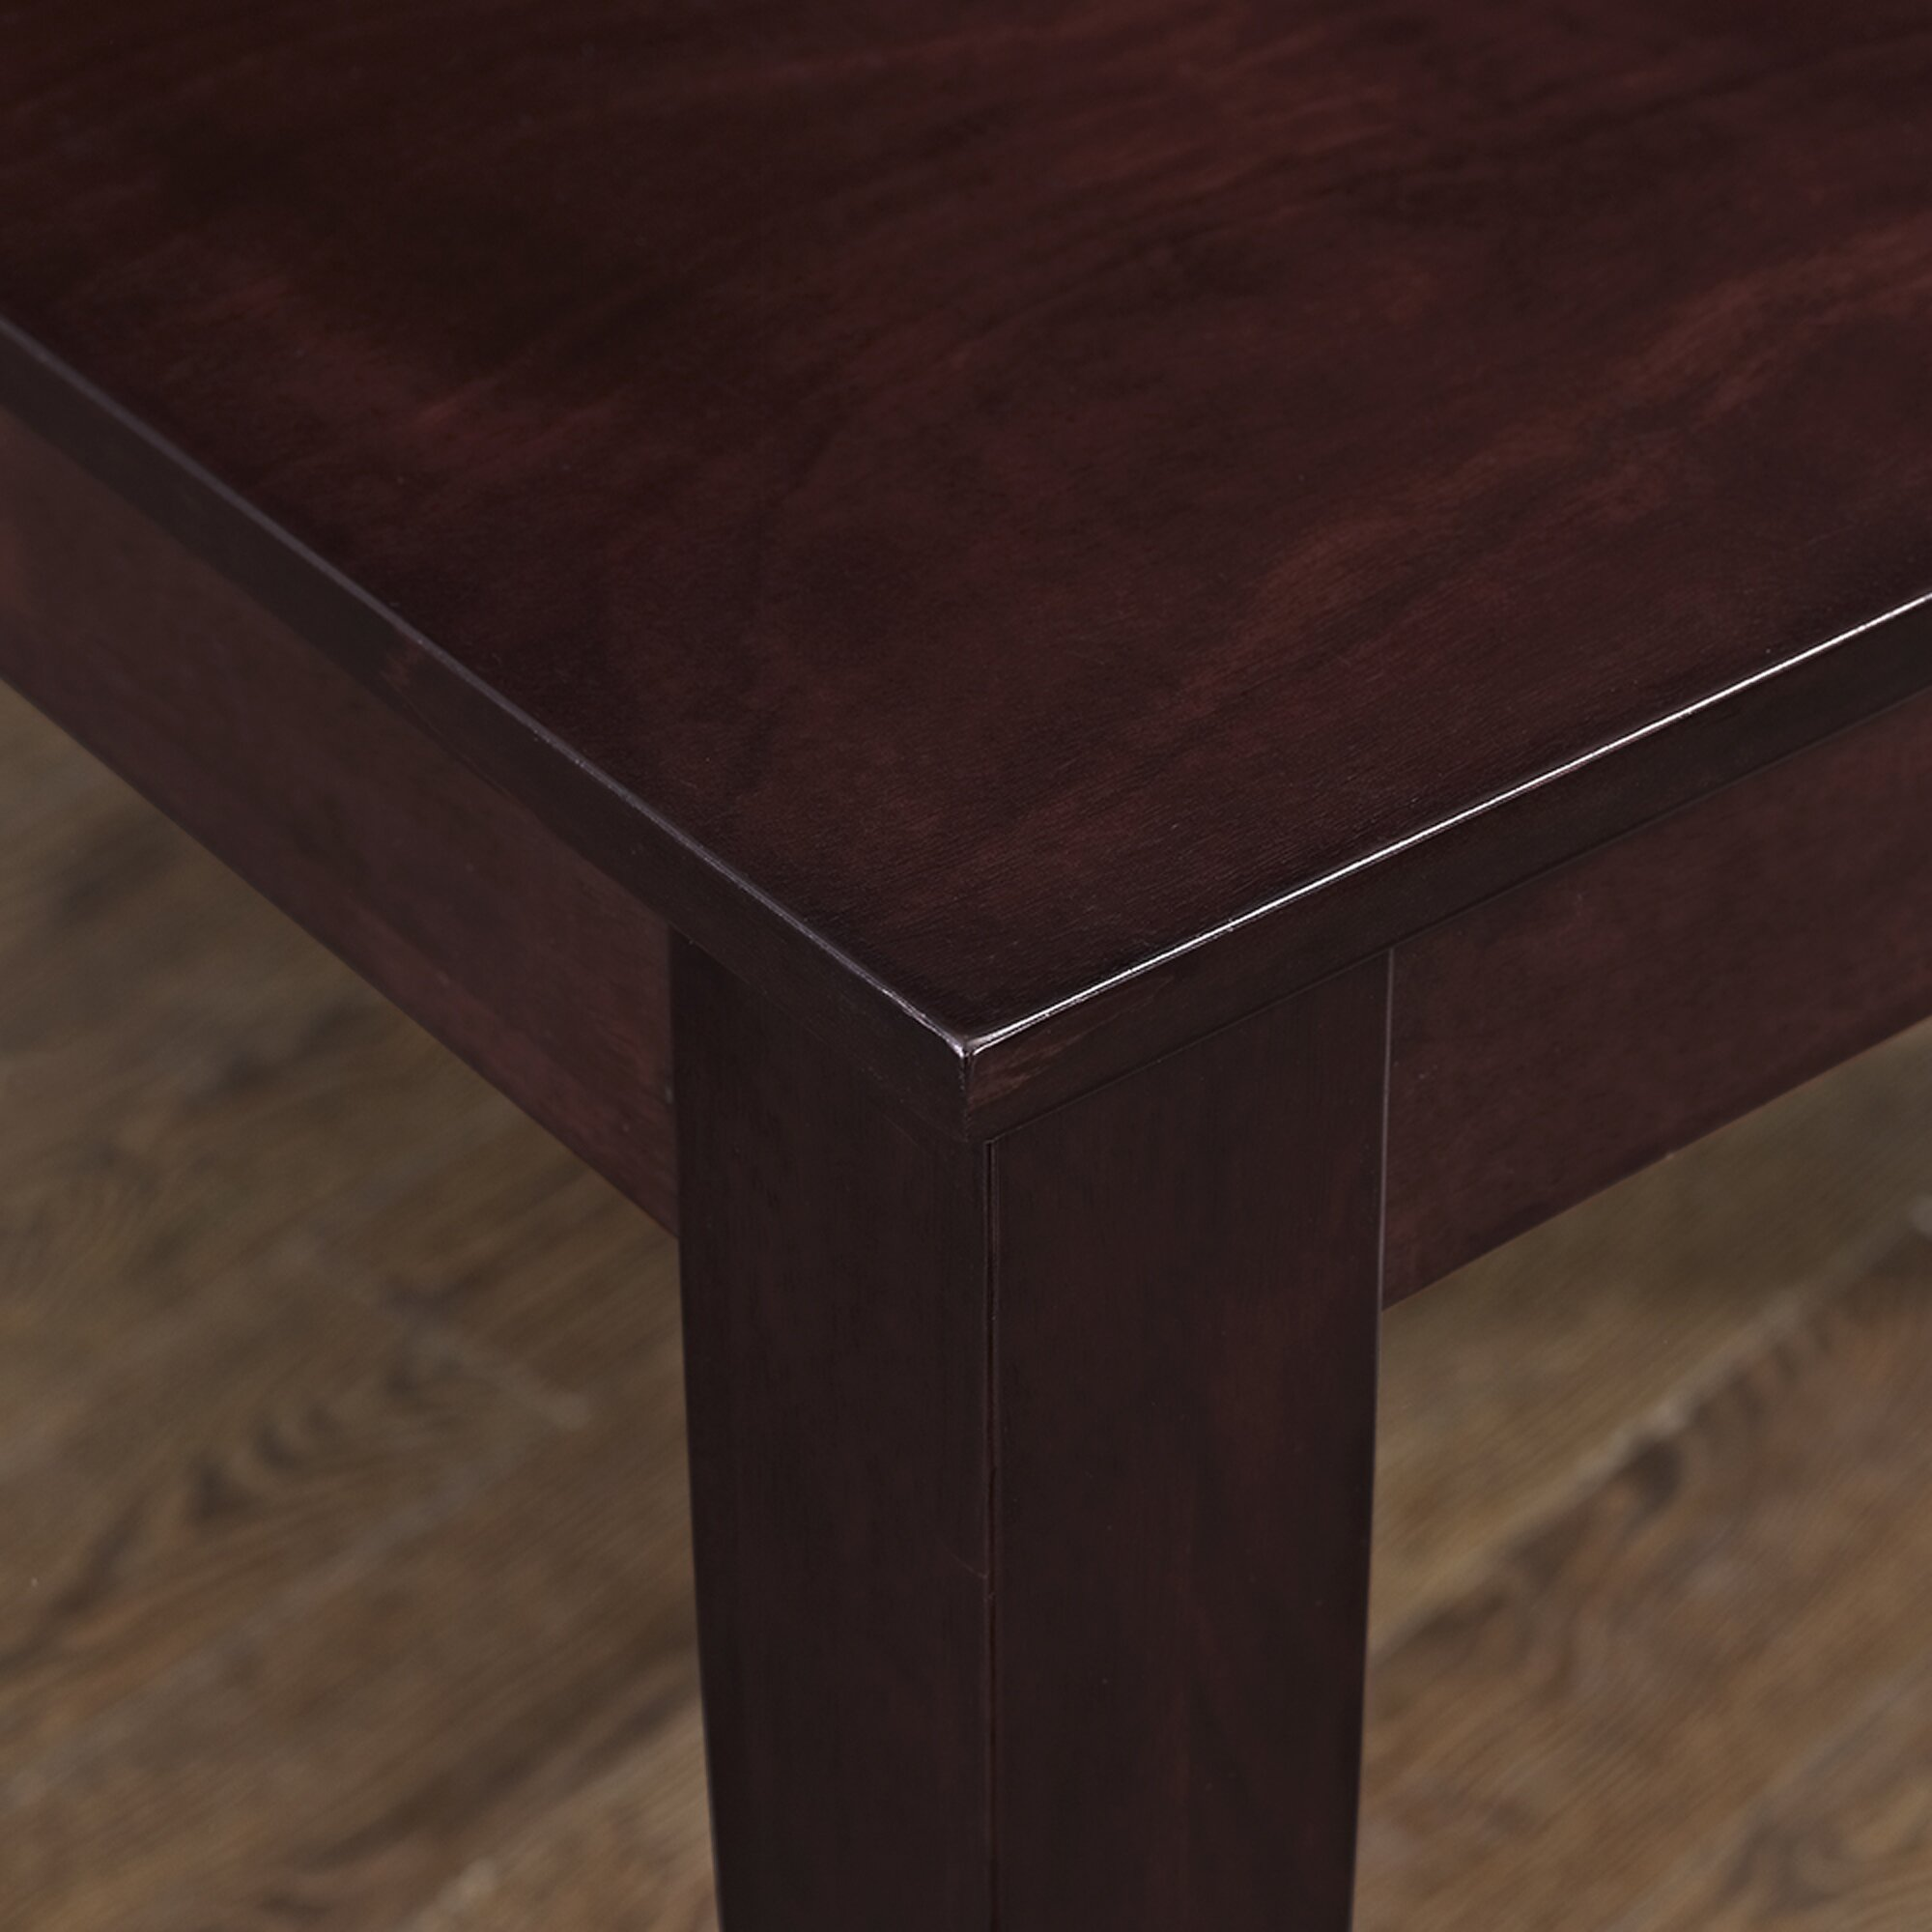 Dining Table Co Darby Home Co Roquefort Square Dining Table Reviews Wayfair